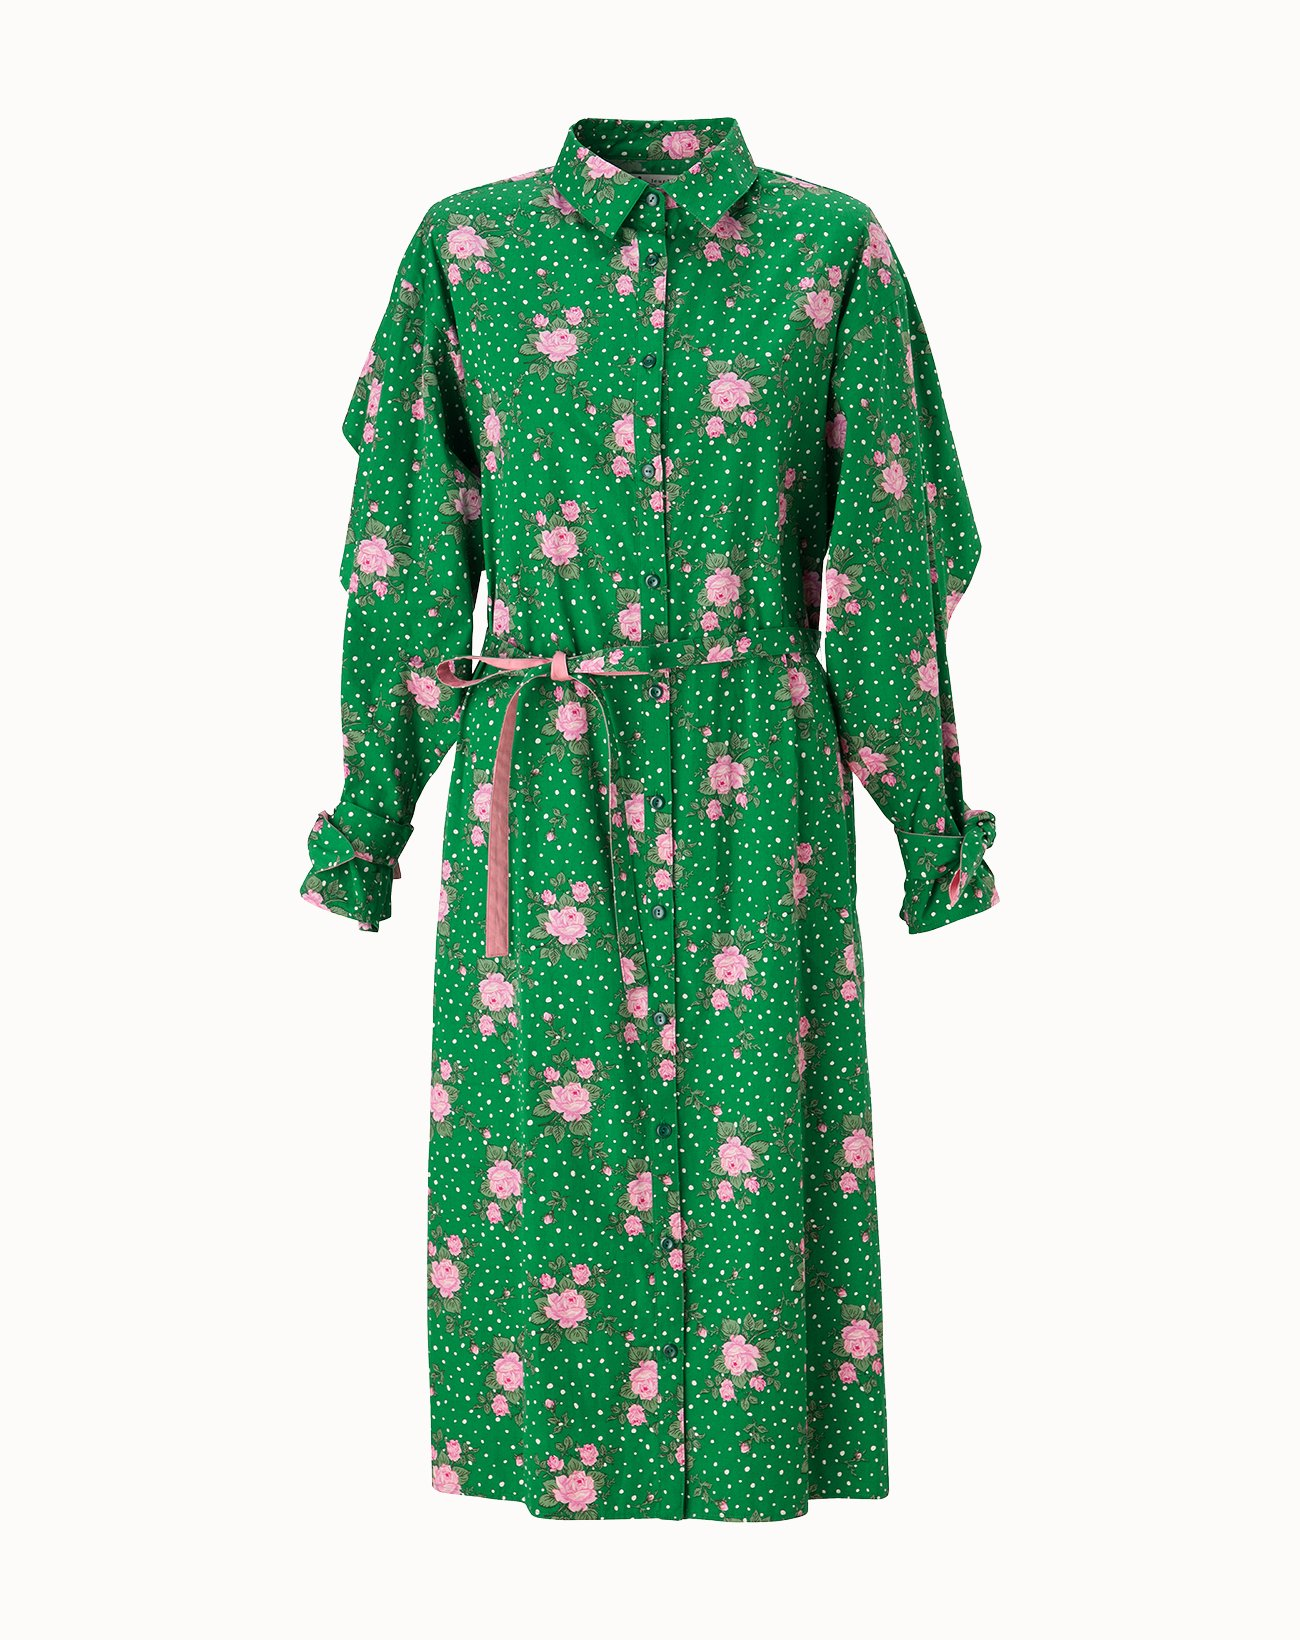 Dot Rose Printed Cotton Dress - Green